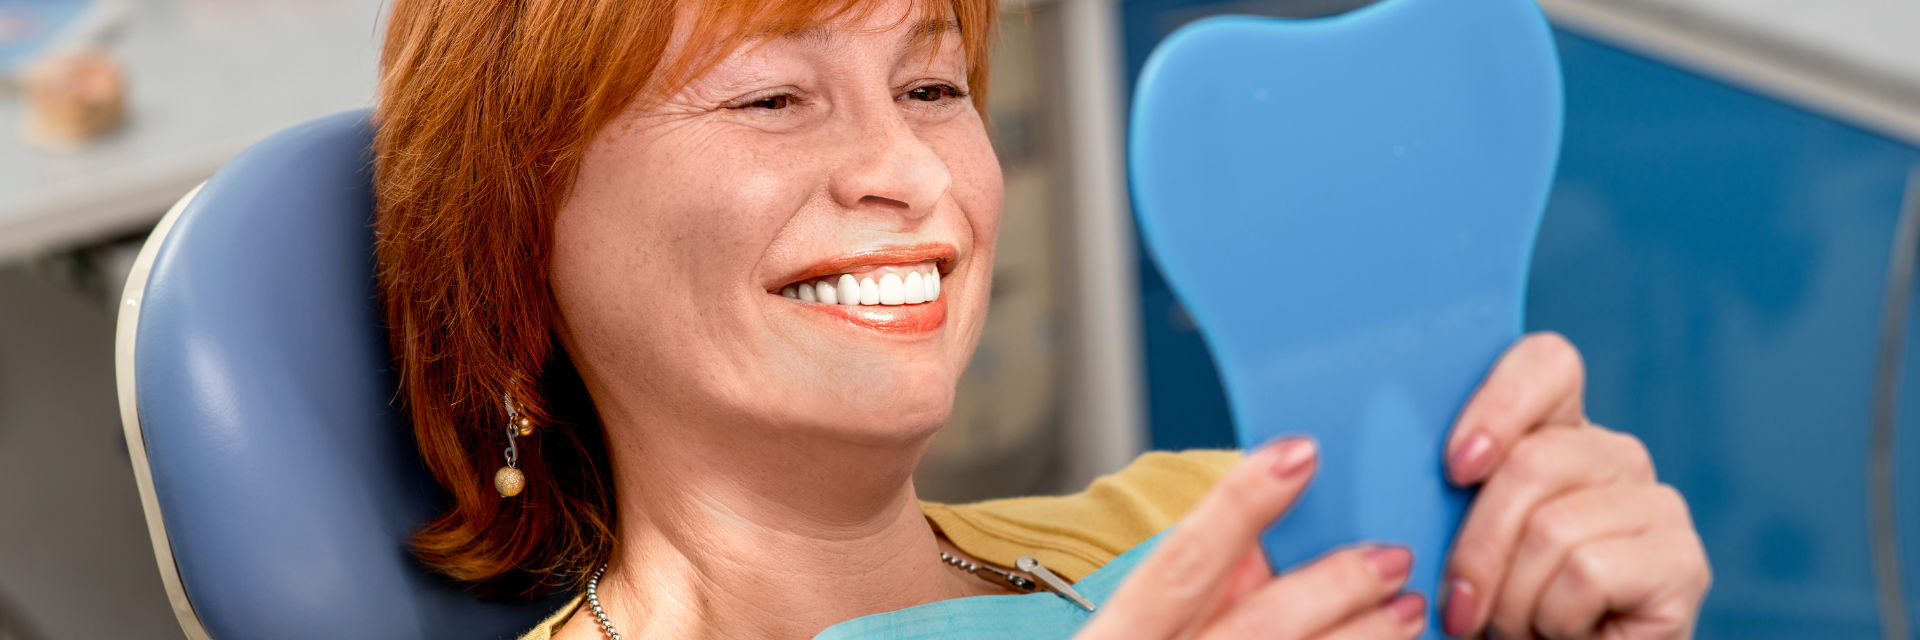 Happy mature woman in a dental chair looking at her beautiful teeth in a mirror.